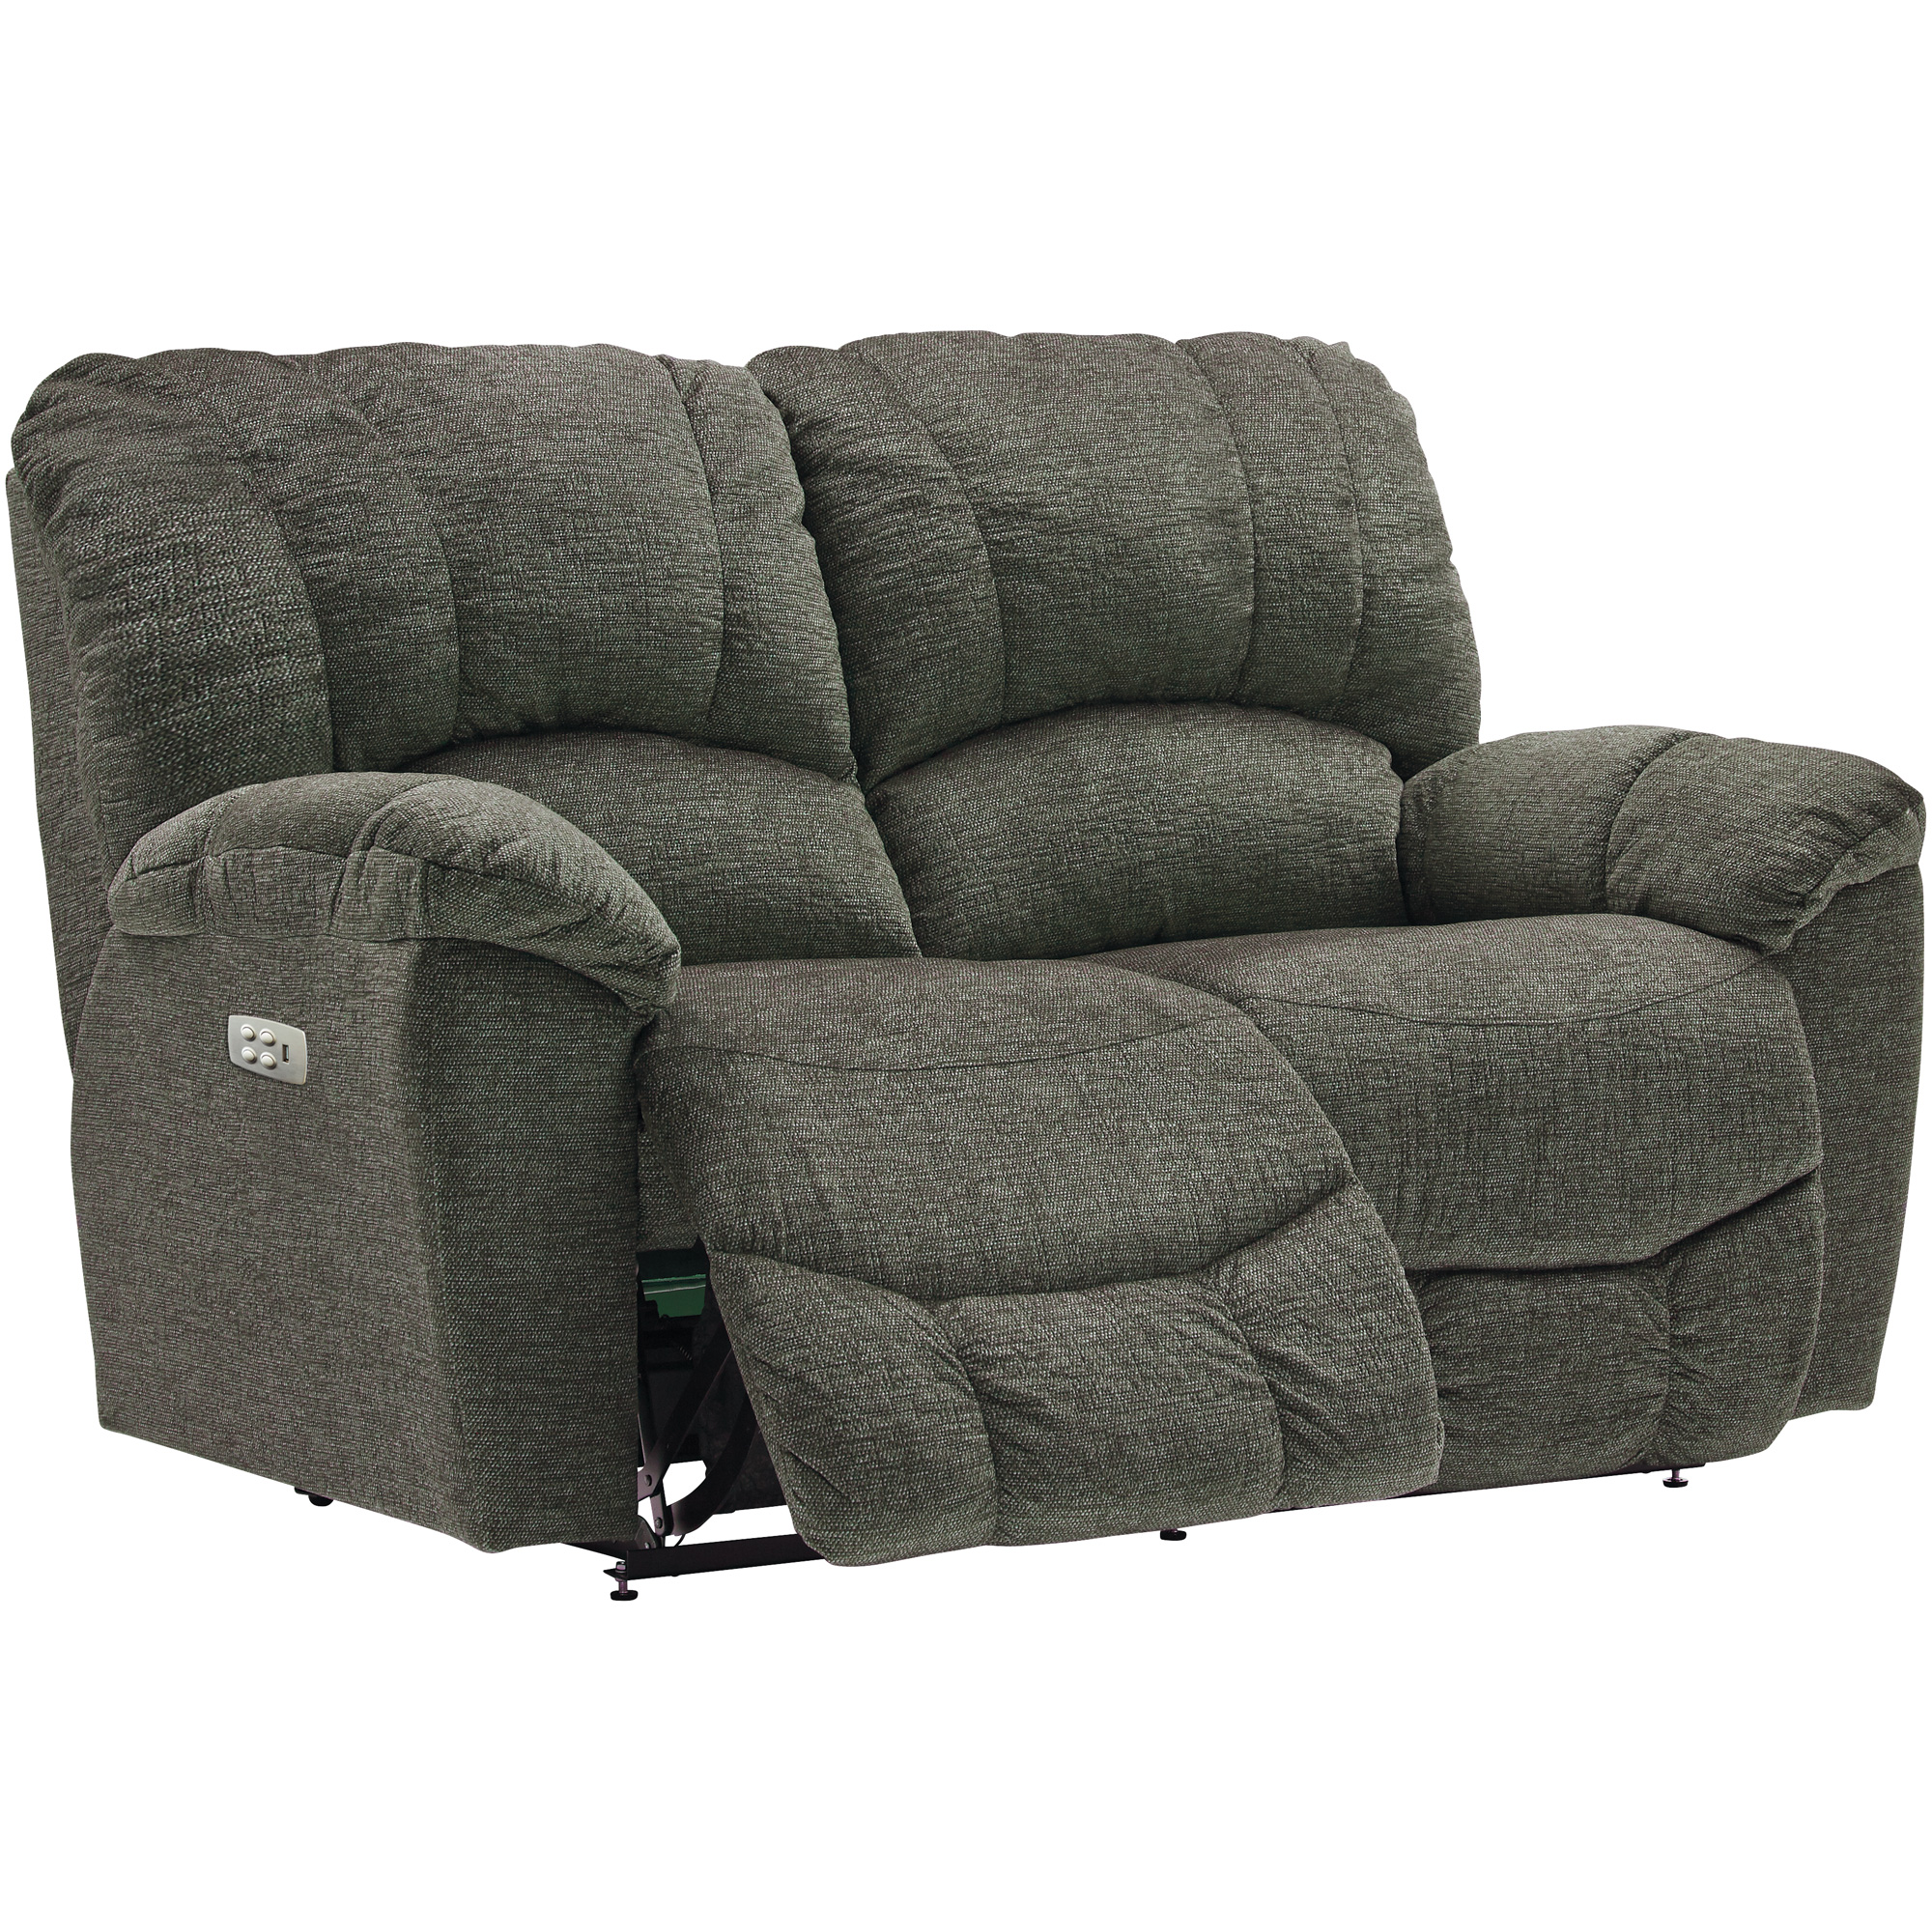 La-Z-Boy | Hayes Sable Power Plus Reclining Loveseat Sofa